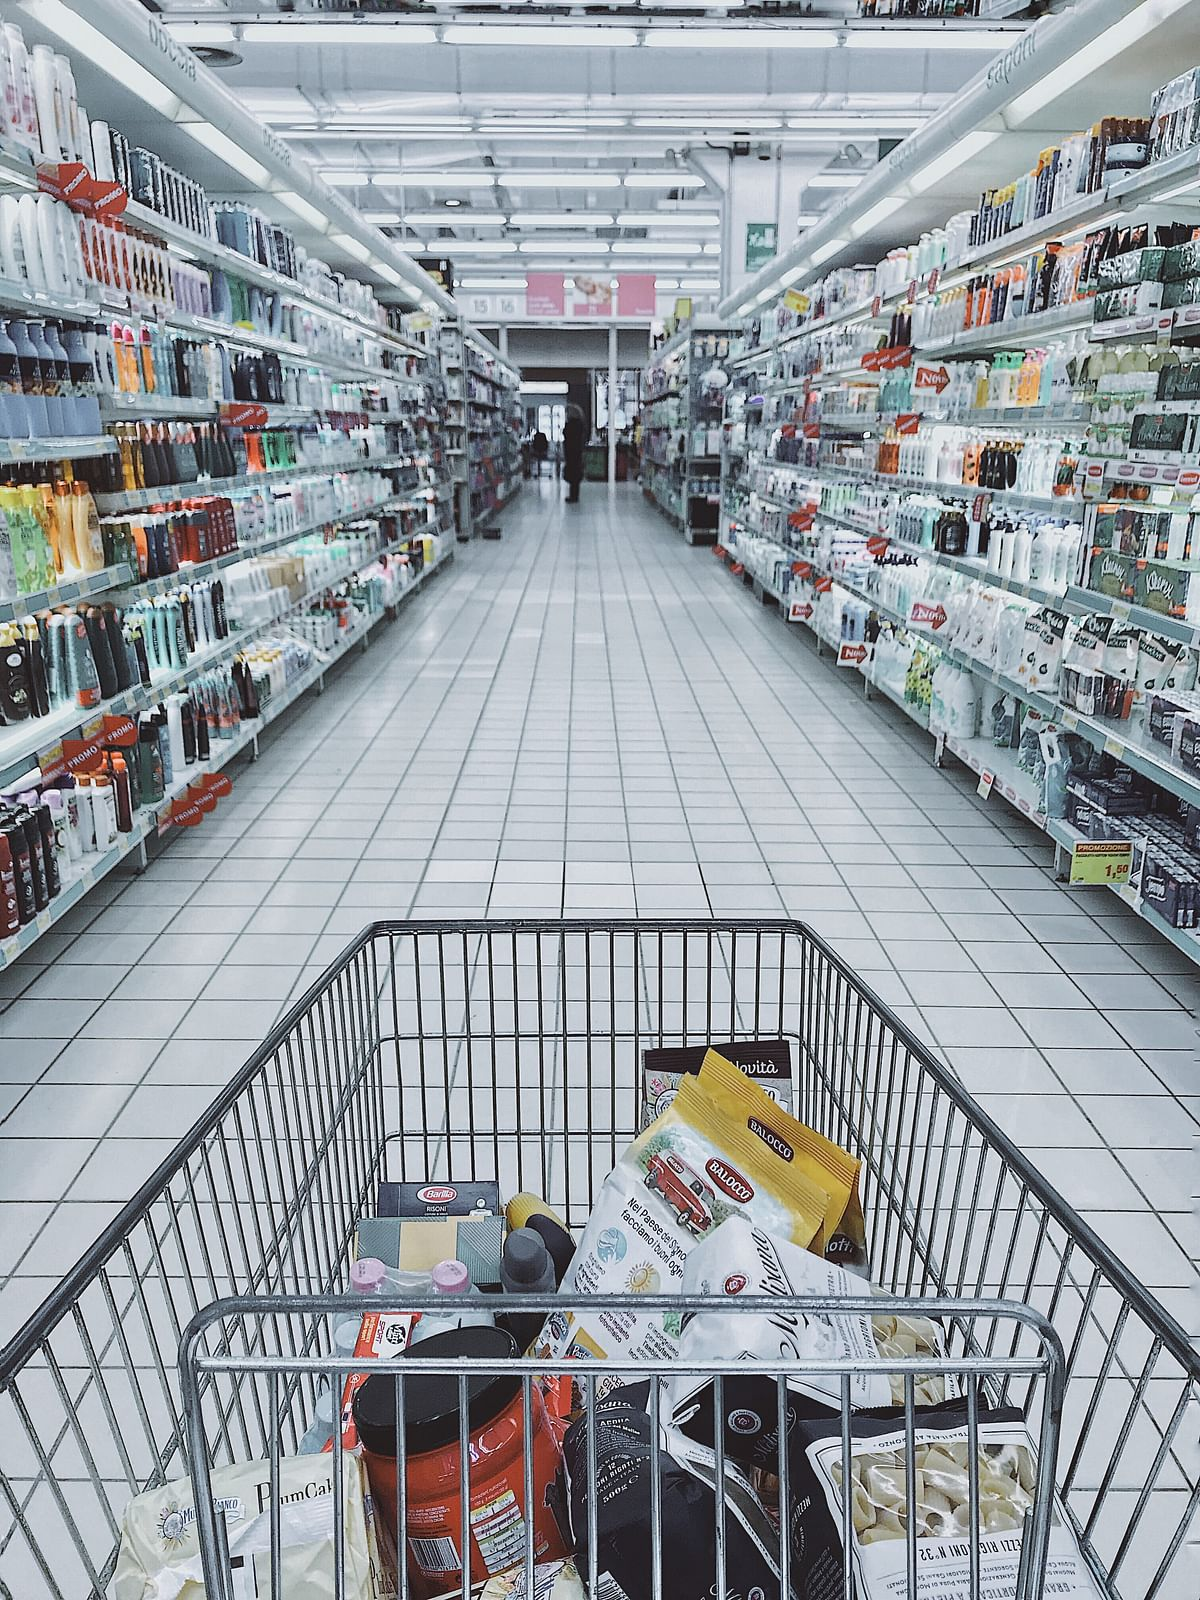 Find out why consumer confidence is subdued in August